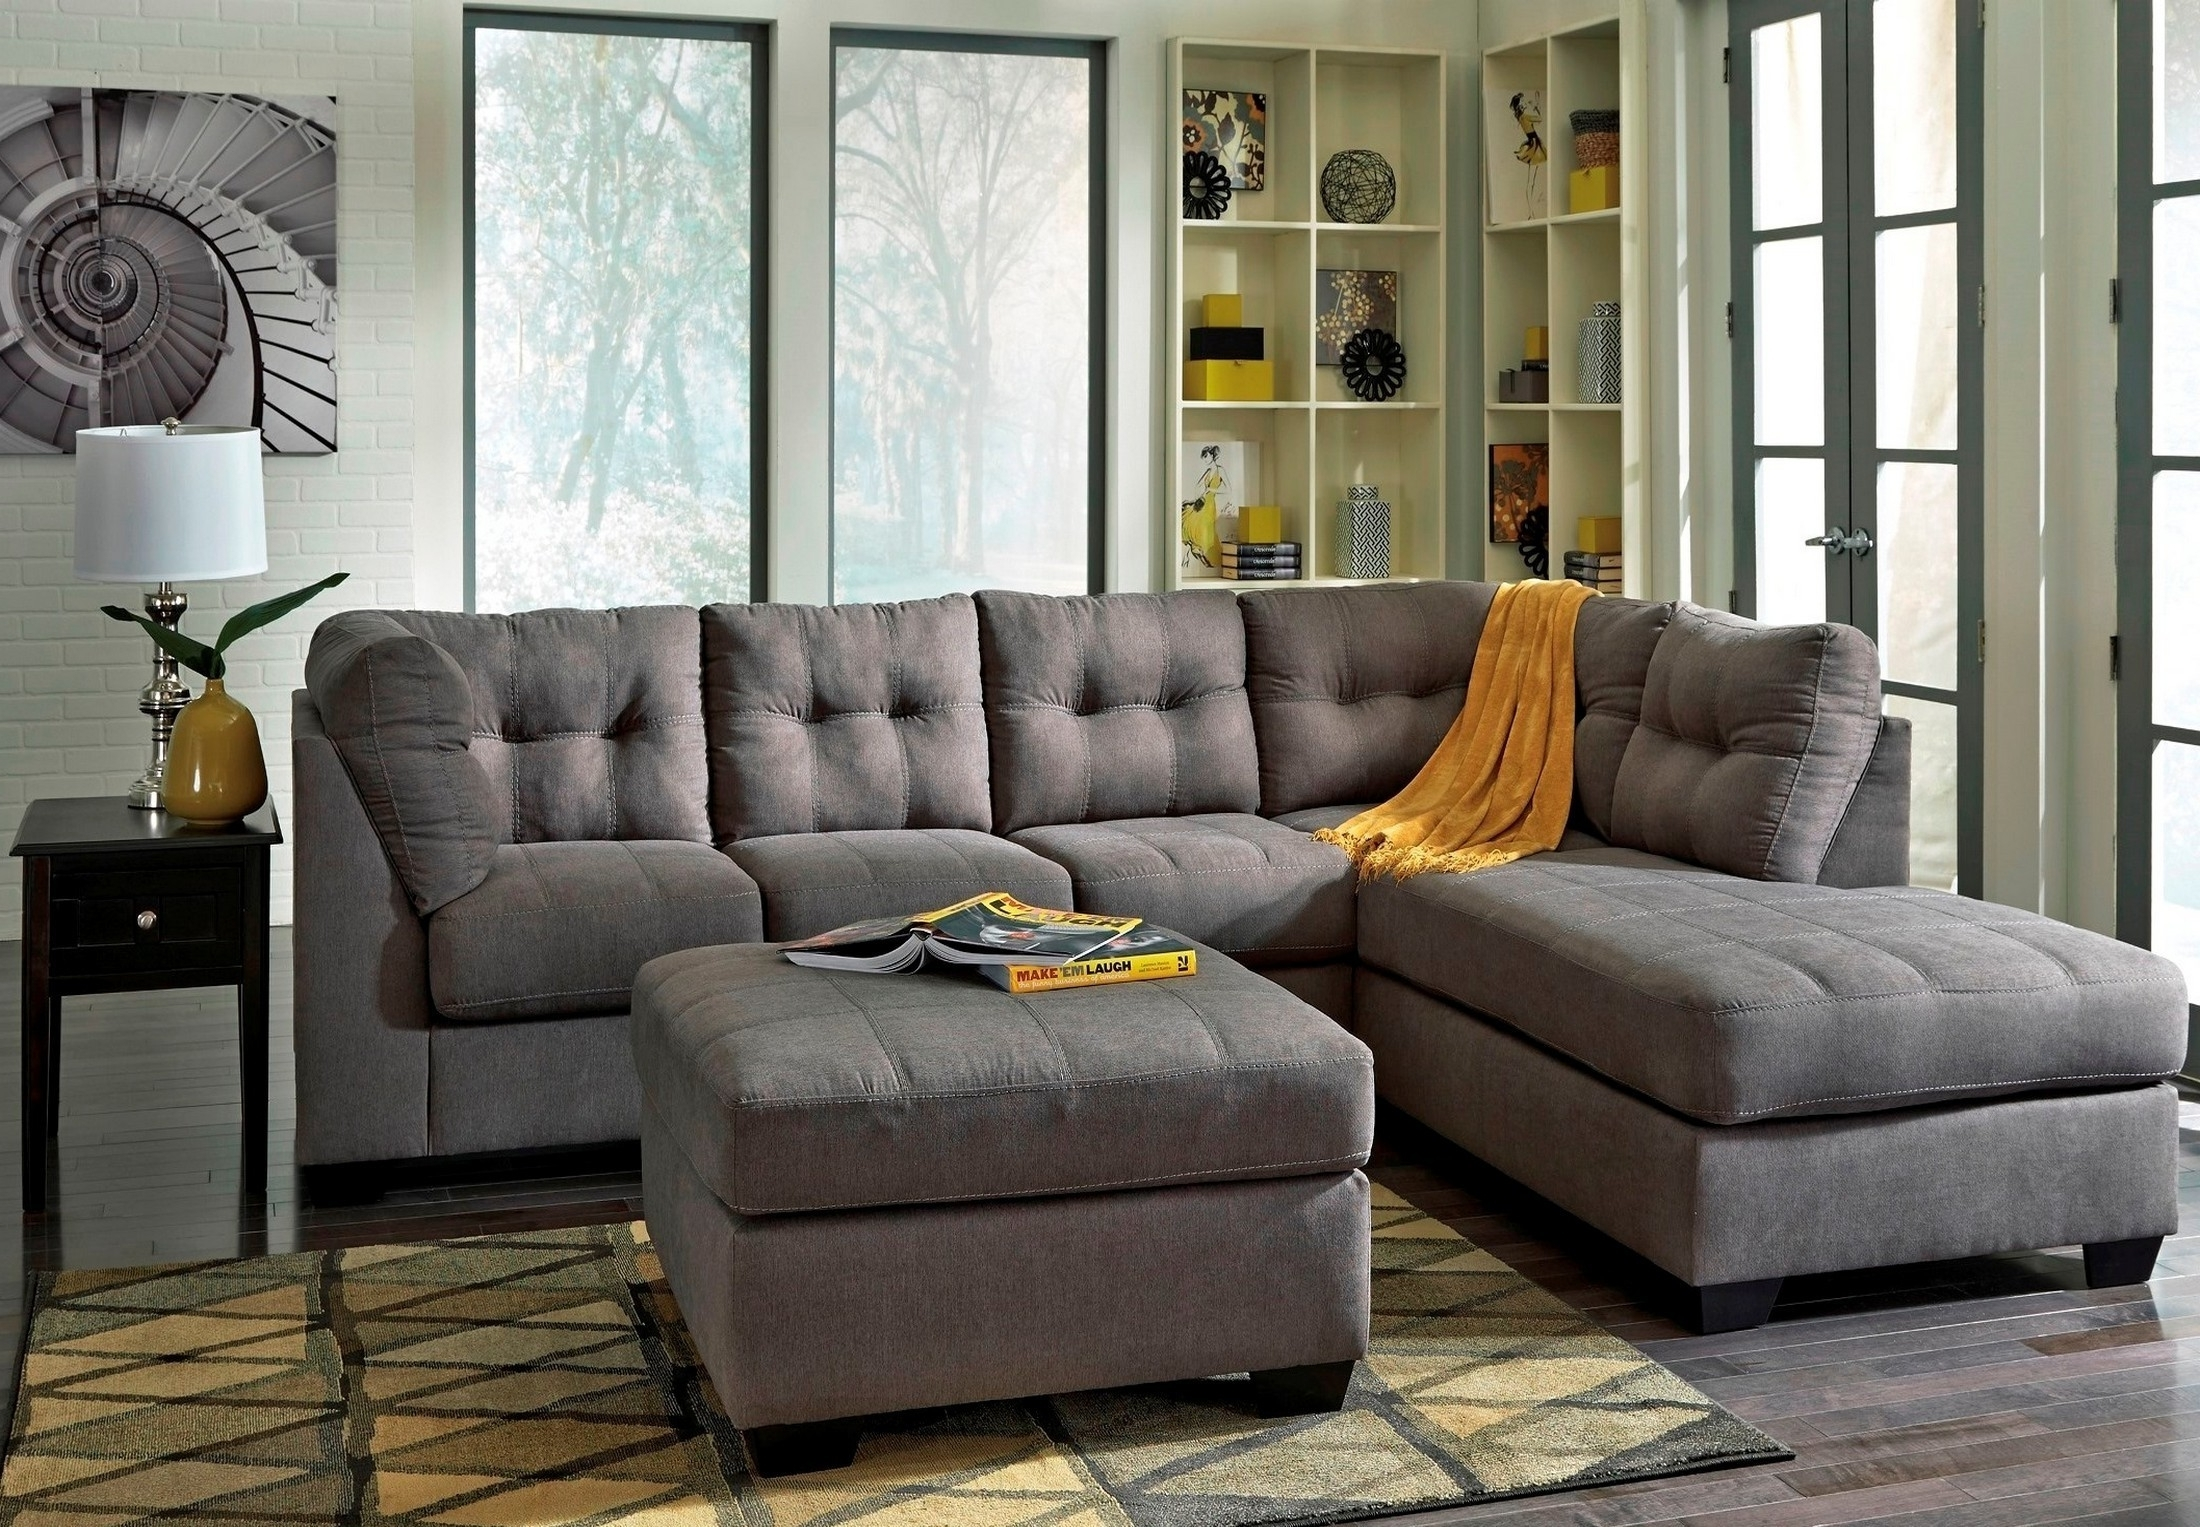 Dufresne Sectional Sofas With Well Liked Maier Charcoal Laf Sectional From Ashley (45200 16 67) (View 10 of 15)